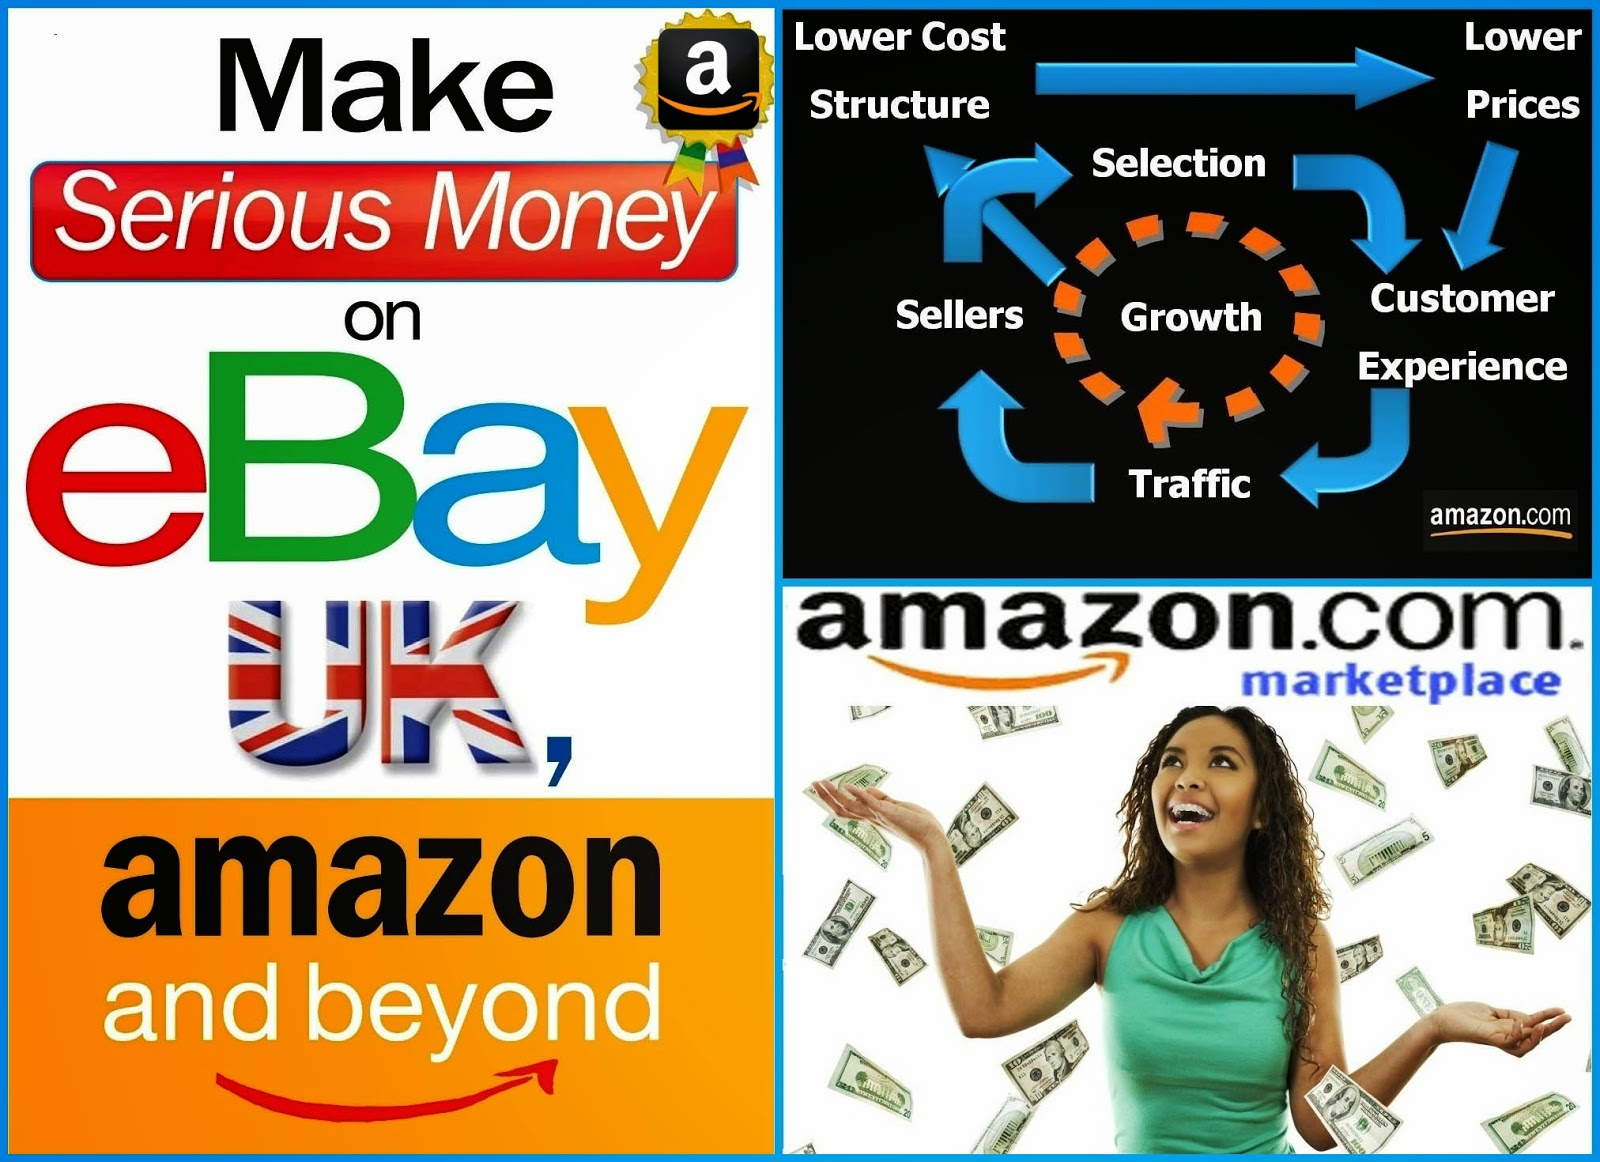 Amazon marketplace business